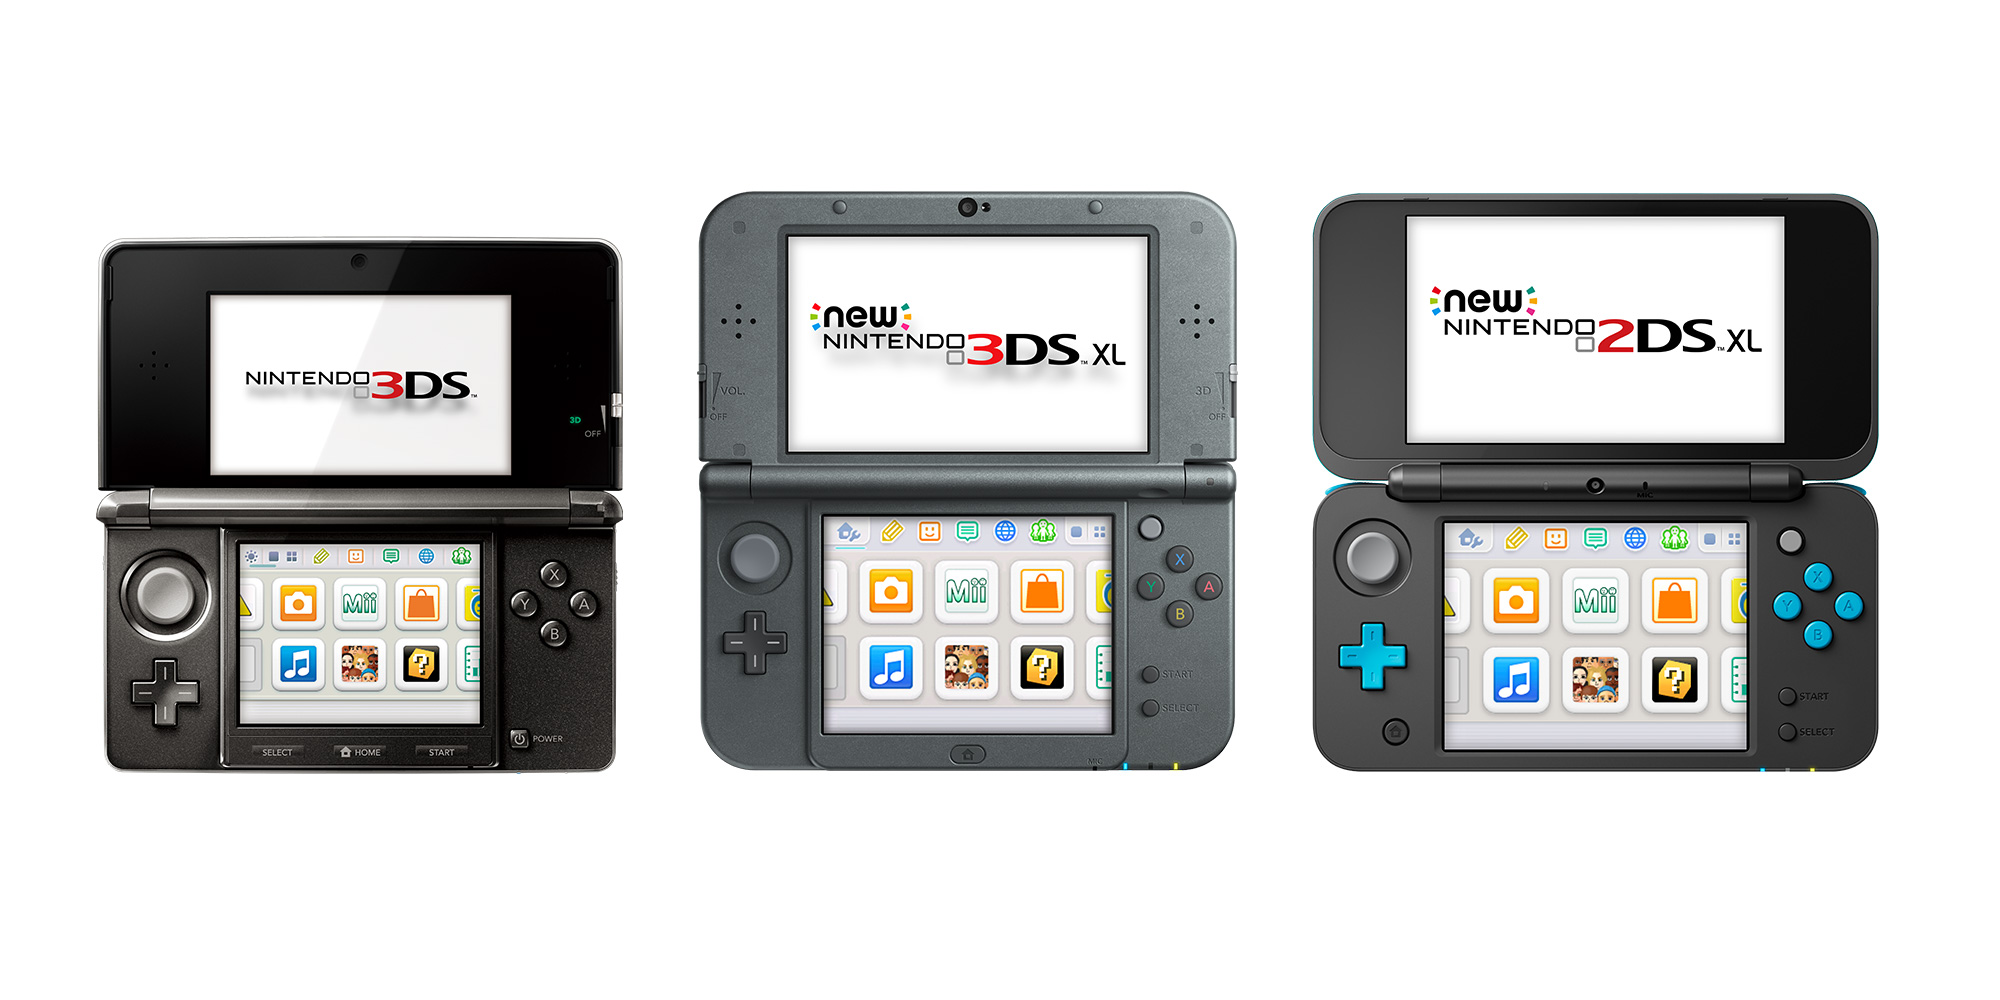 INFORMATION ABOUT THE 3D FEATURE OF NINTENDO 3DS.